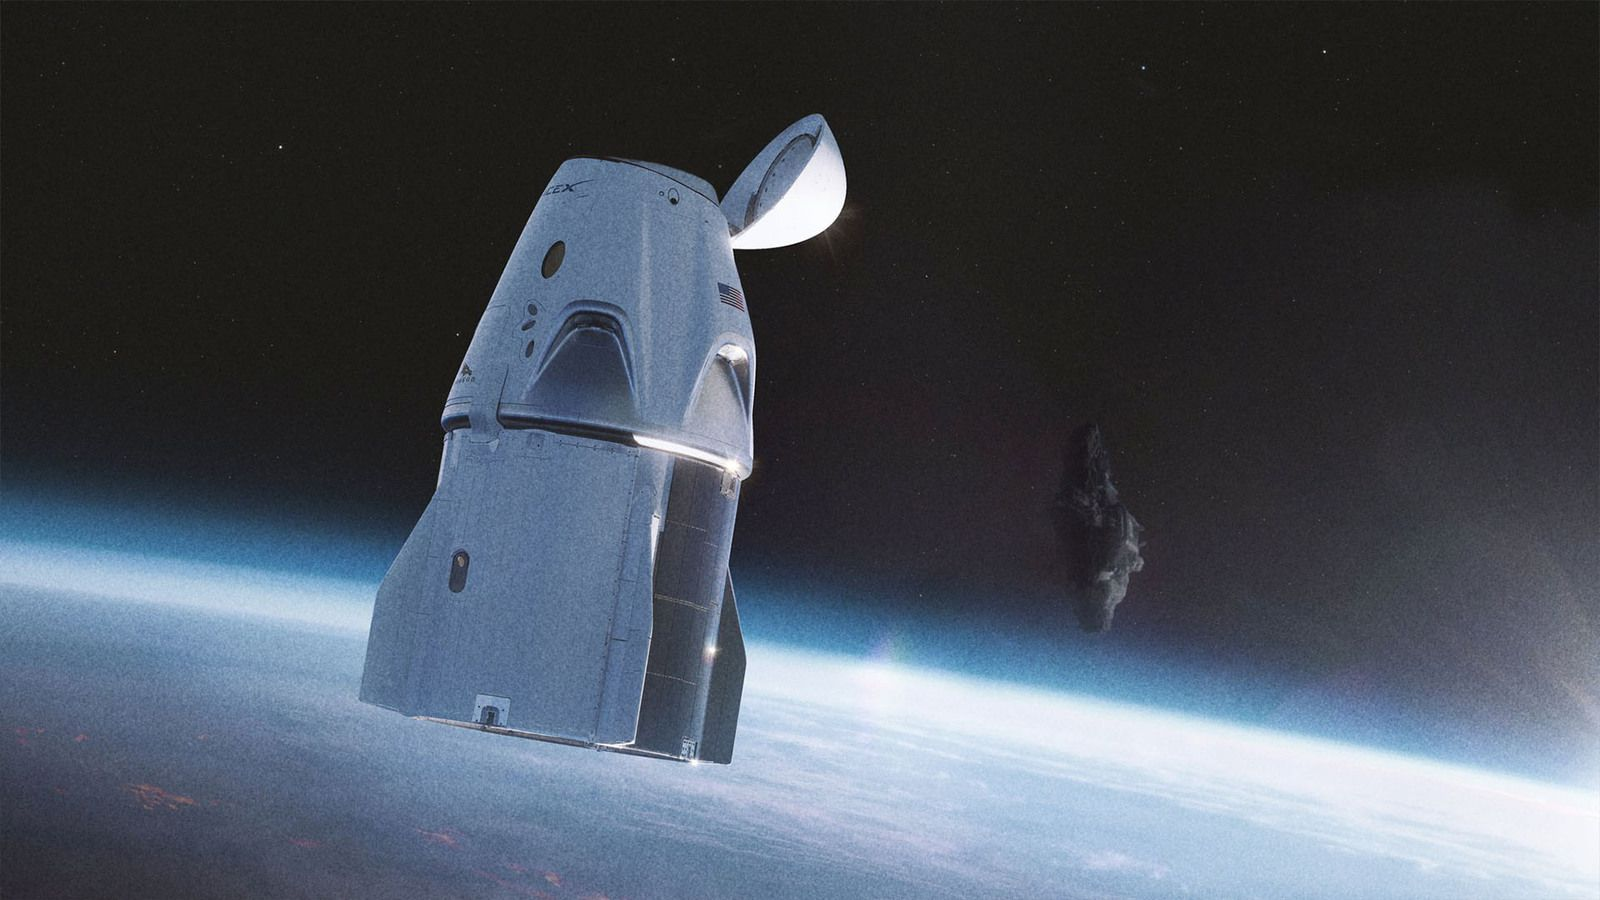 👽 SpaceX Crew Dragon Spacecraft Close Encounter With UFO On Its Way To ISS